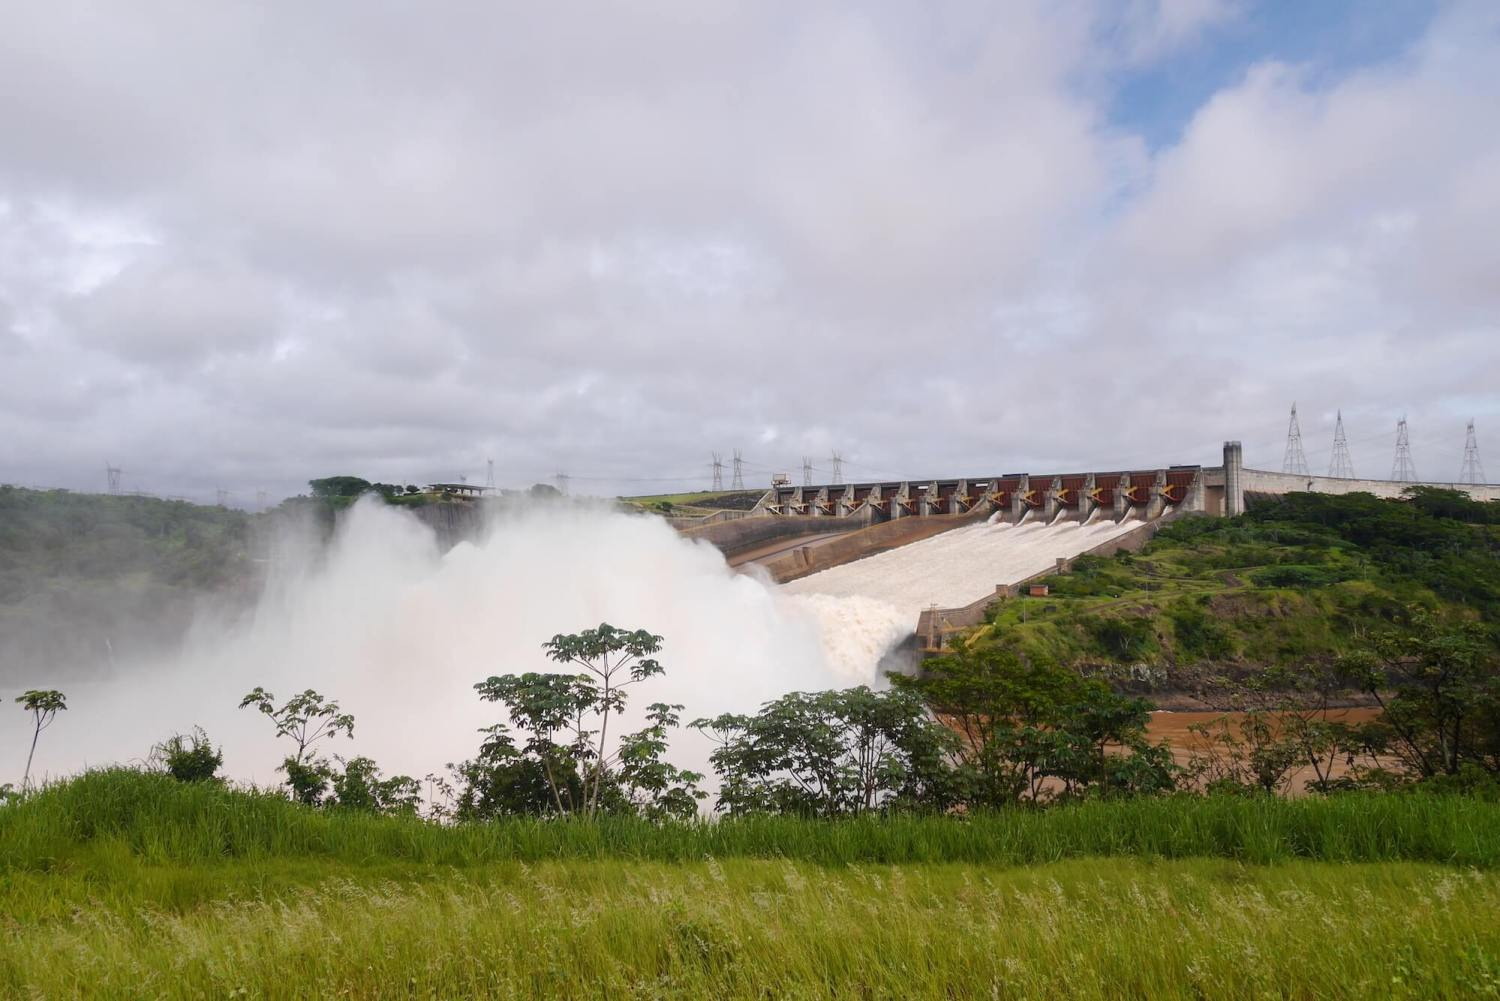 itaipu dam working spillways, taipu dam wing dam